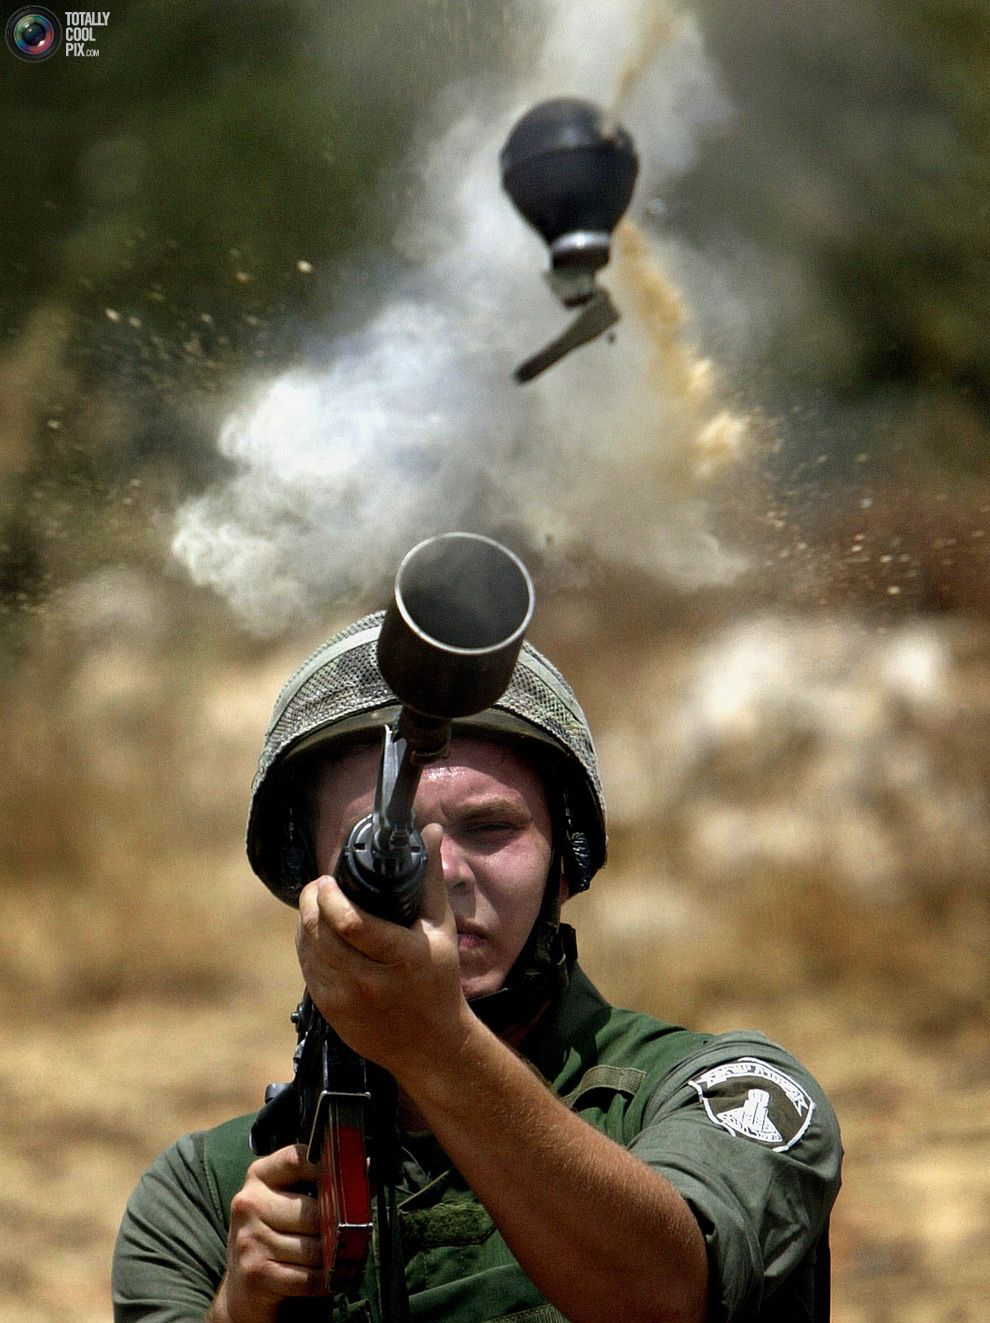 An Israeli border policeman fires teargas canister during a protest by Palestinians against the construction of the Israeli security barrier in the West Bank village of Az-Zawiya June 20, 2004.